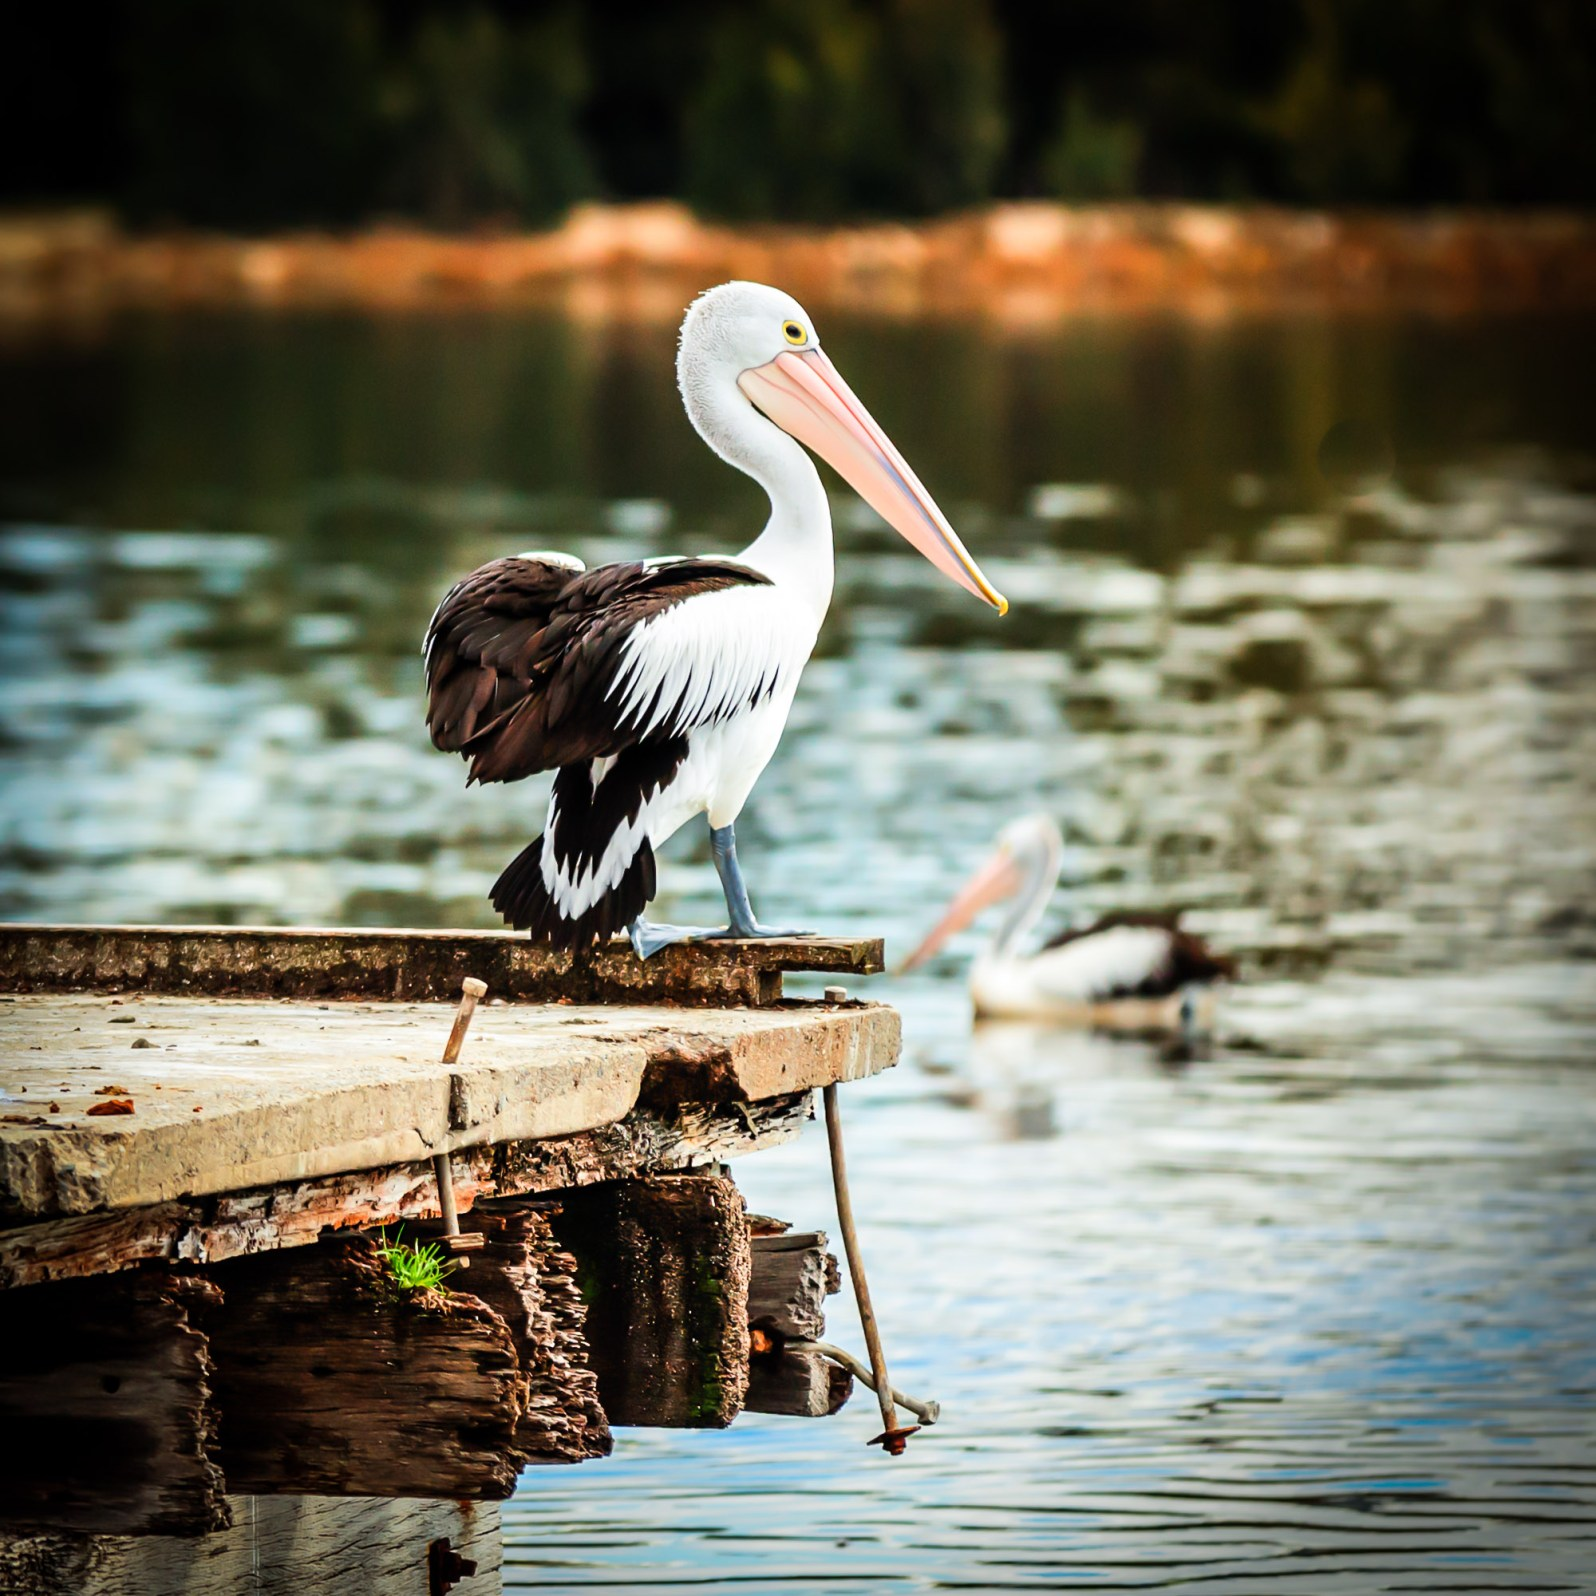 An Australian Pelican on Perth's Swan River in Western Australia.